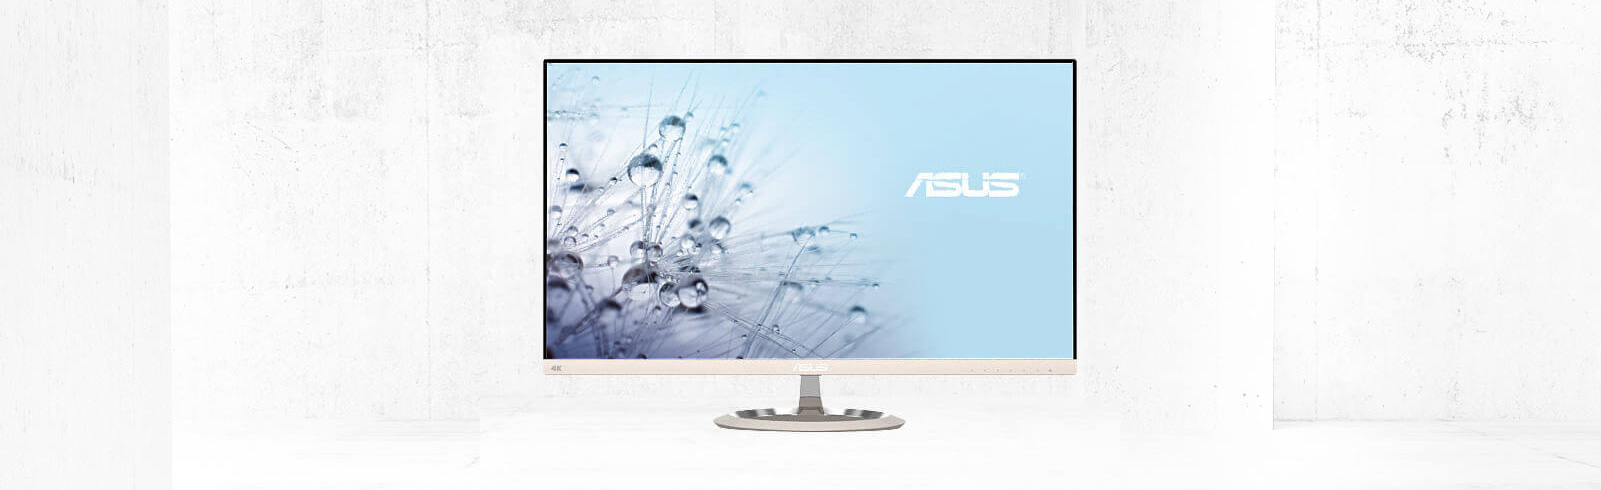 A new 4K Asus desktop monitor from its Designo Eye Care series is announced